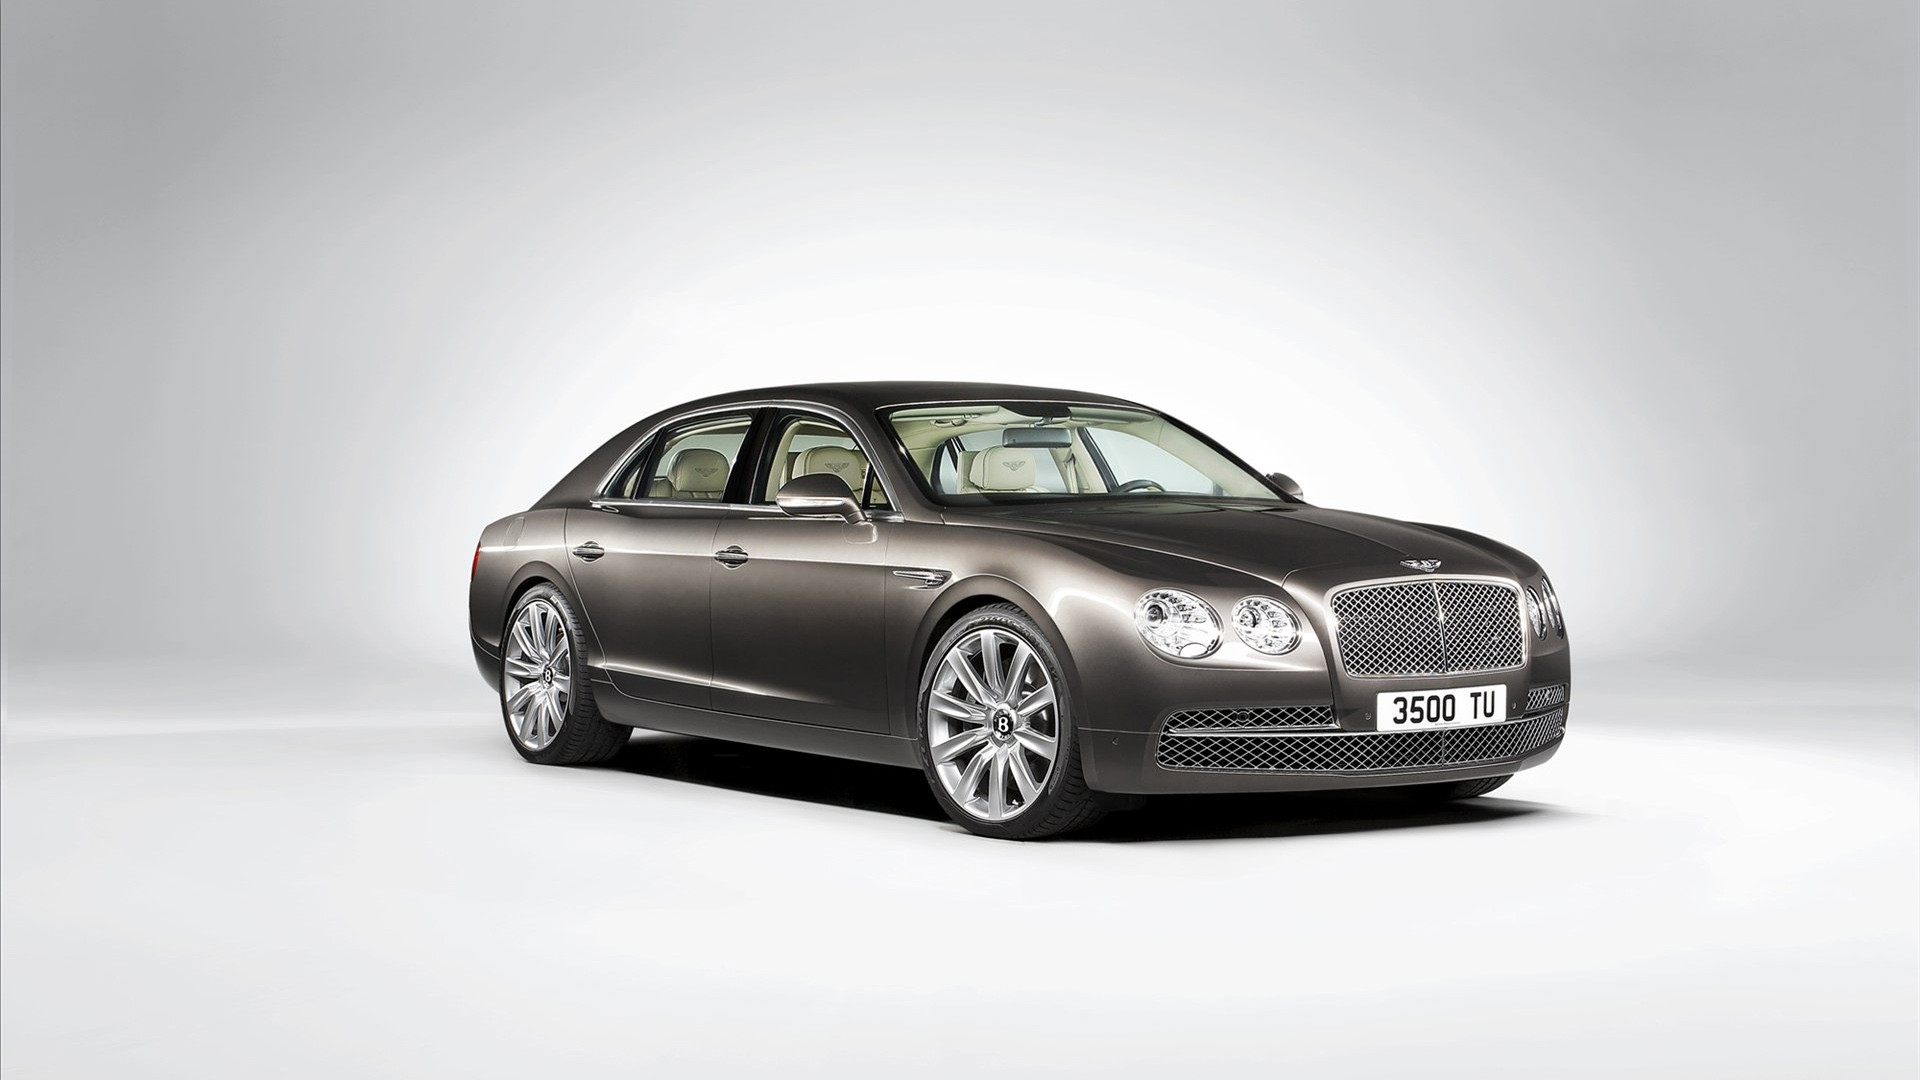 Www Hummer Limousine Car Wallpapers Com 2014 Bentley Flying Spur Wallpaper Hd Car Wallpapers